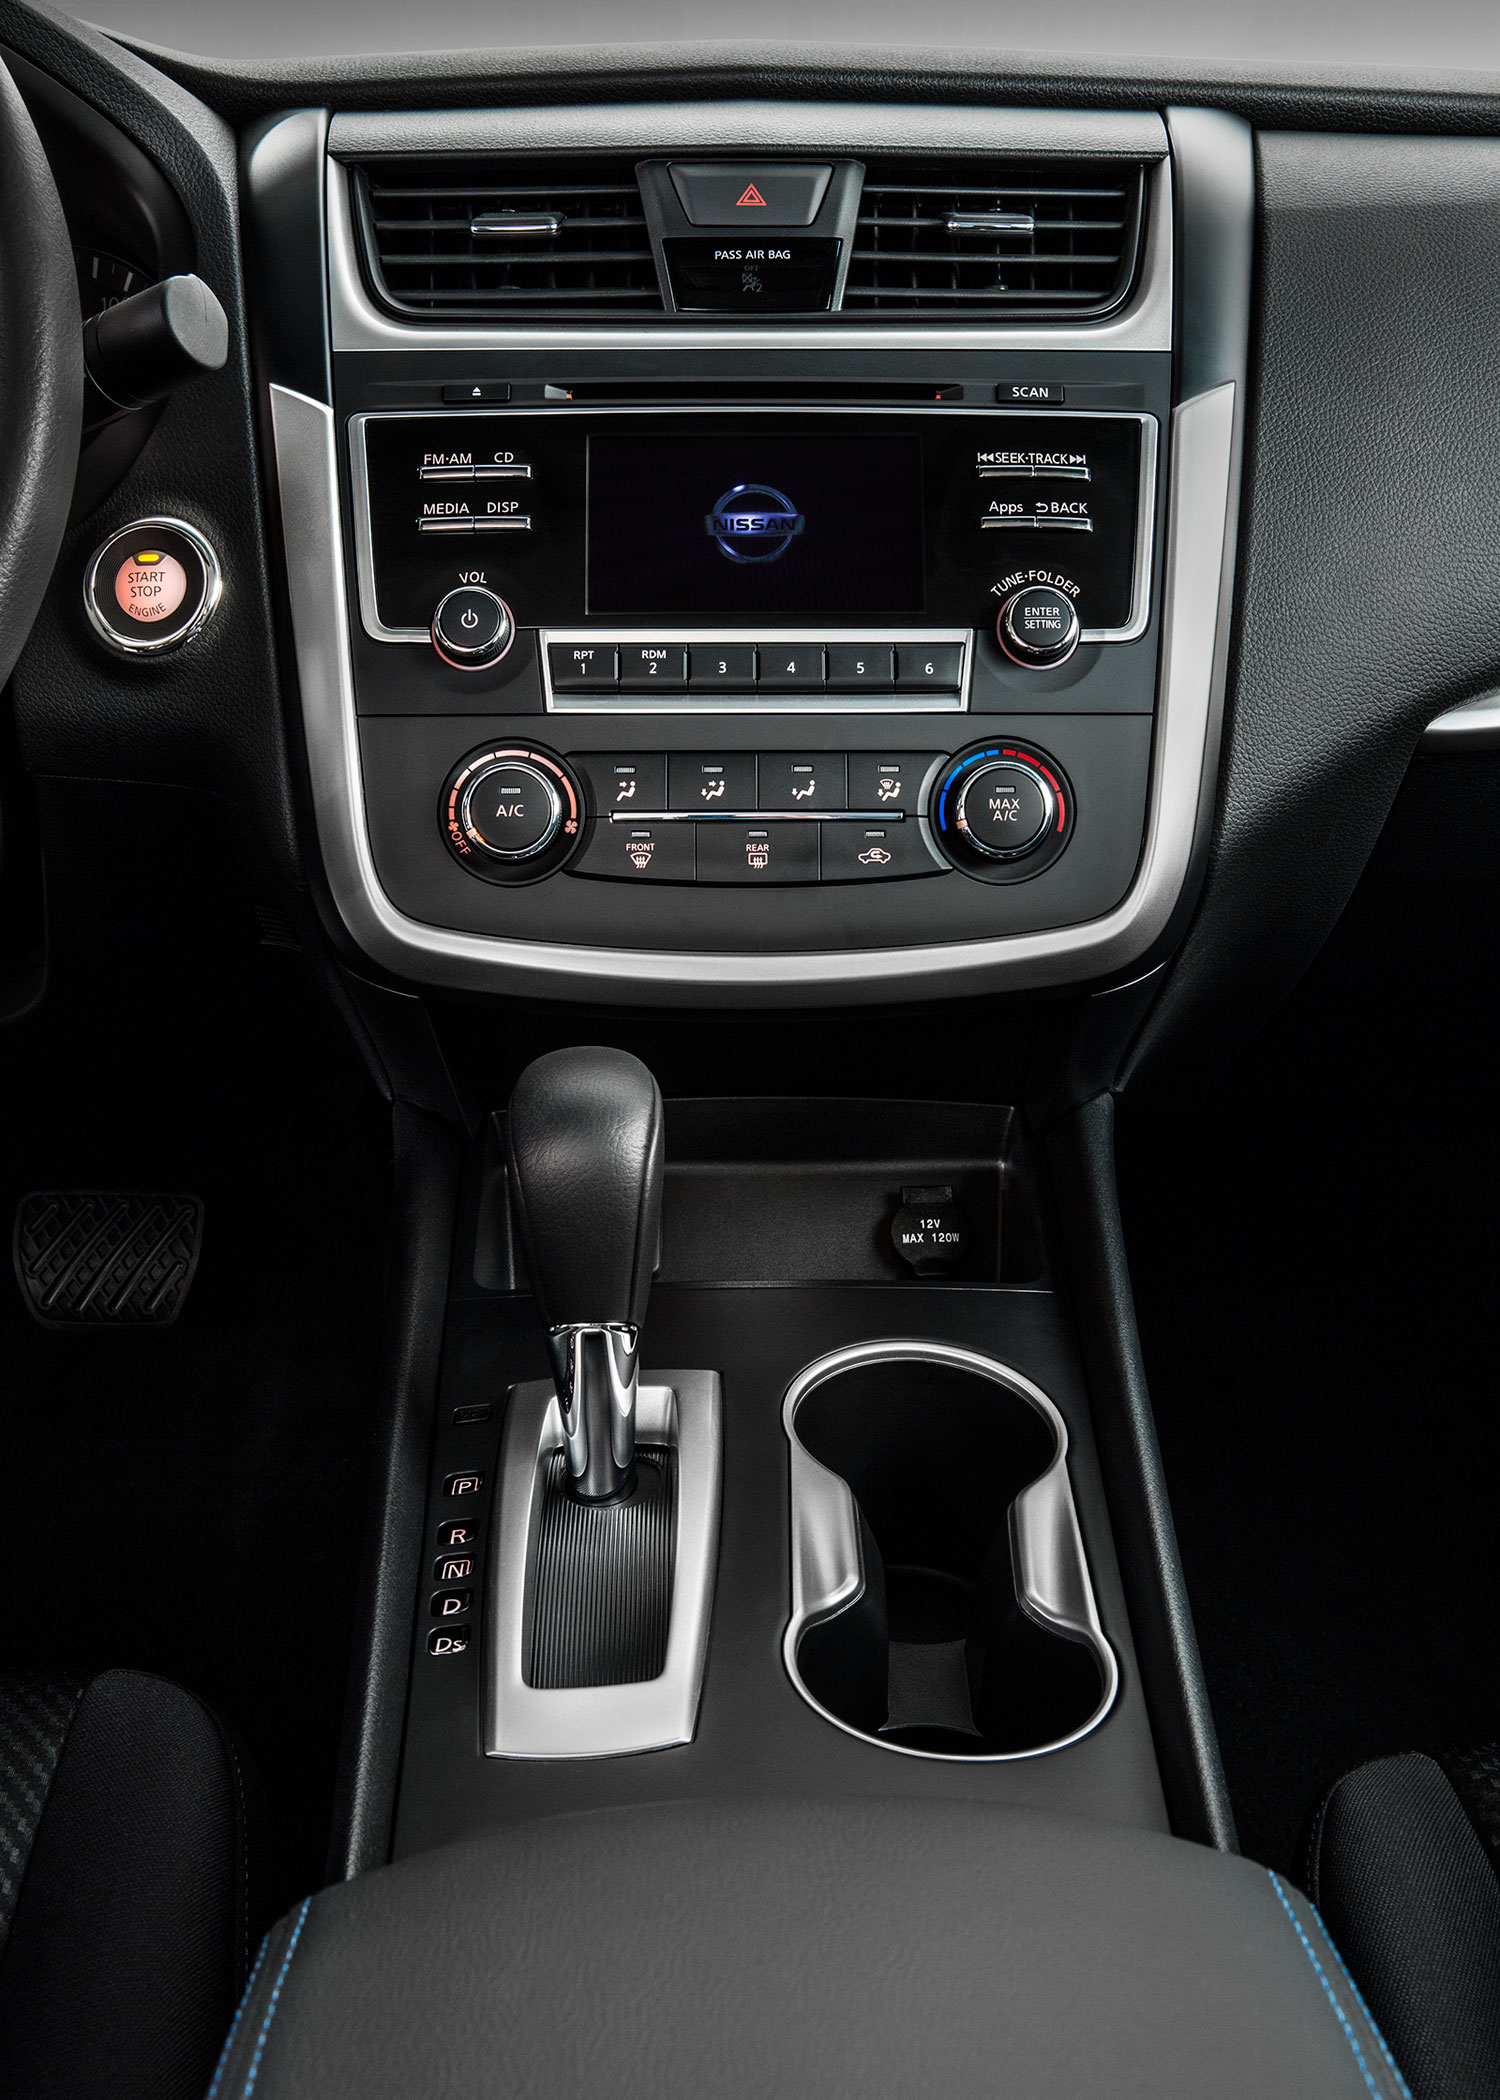 2016-Nissan-Altima-SR-interior-tall-view Take A Look About Nissan Altima 2016 Interior with Terrific Pictures Cars Review